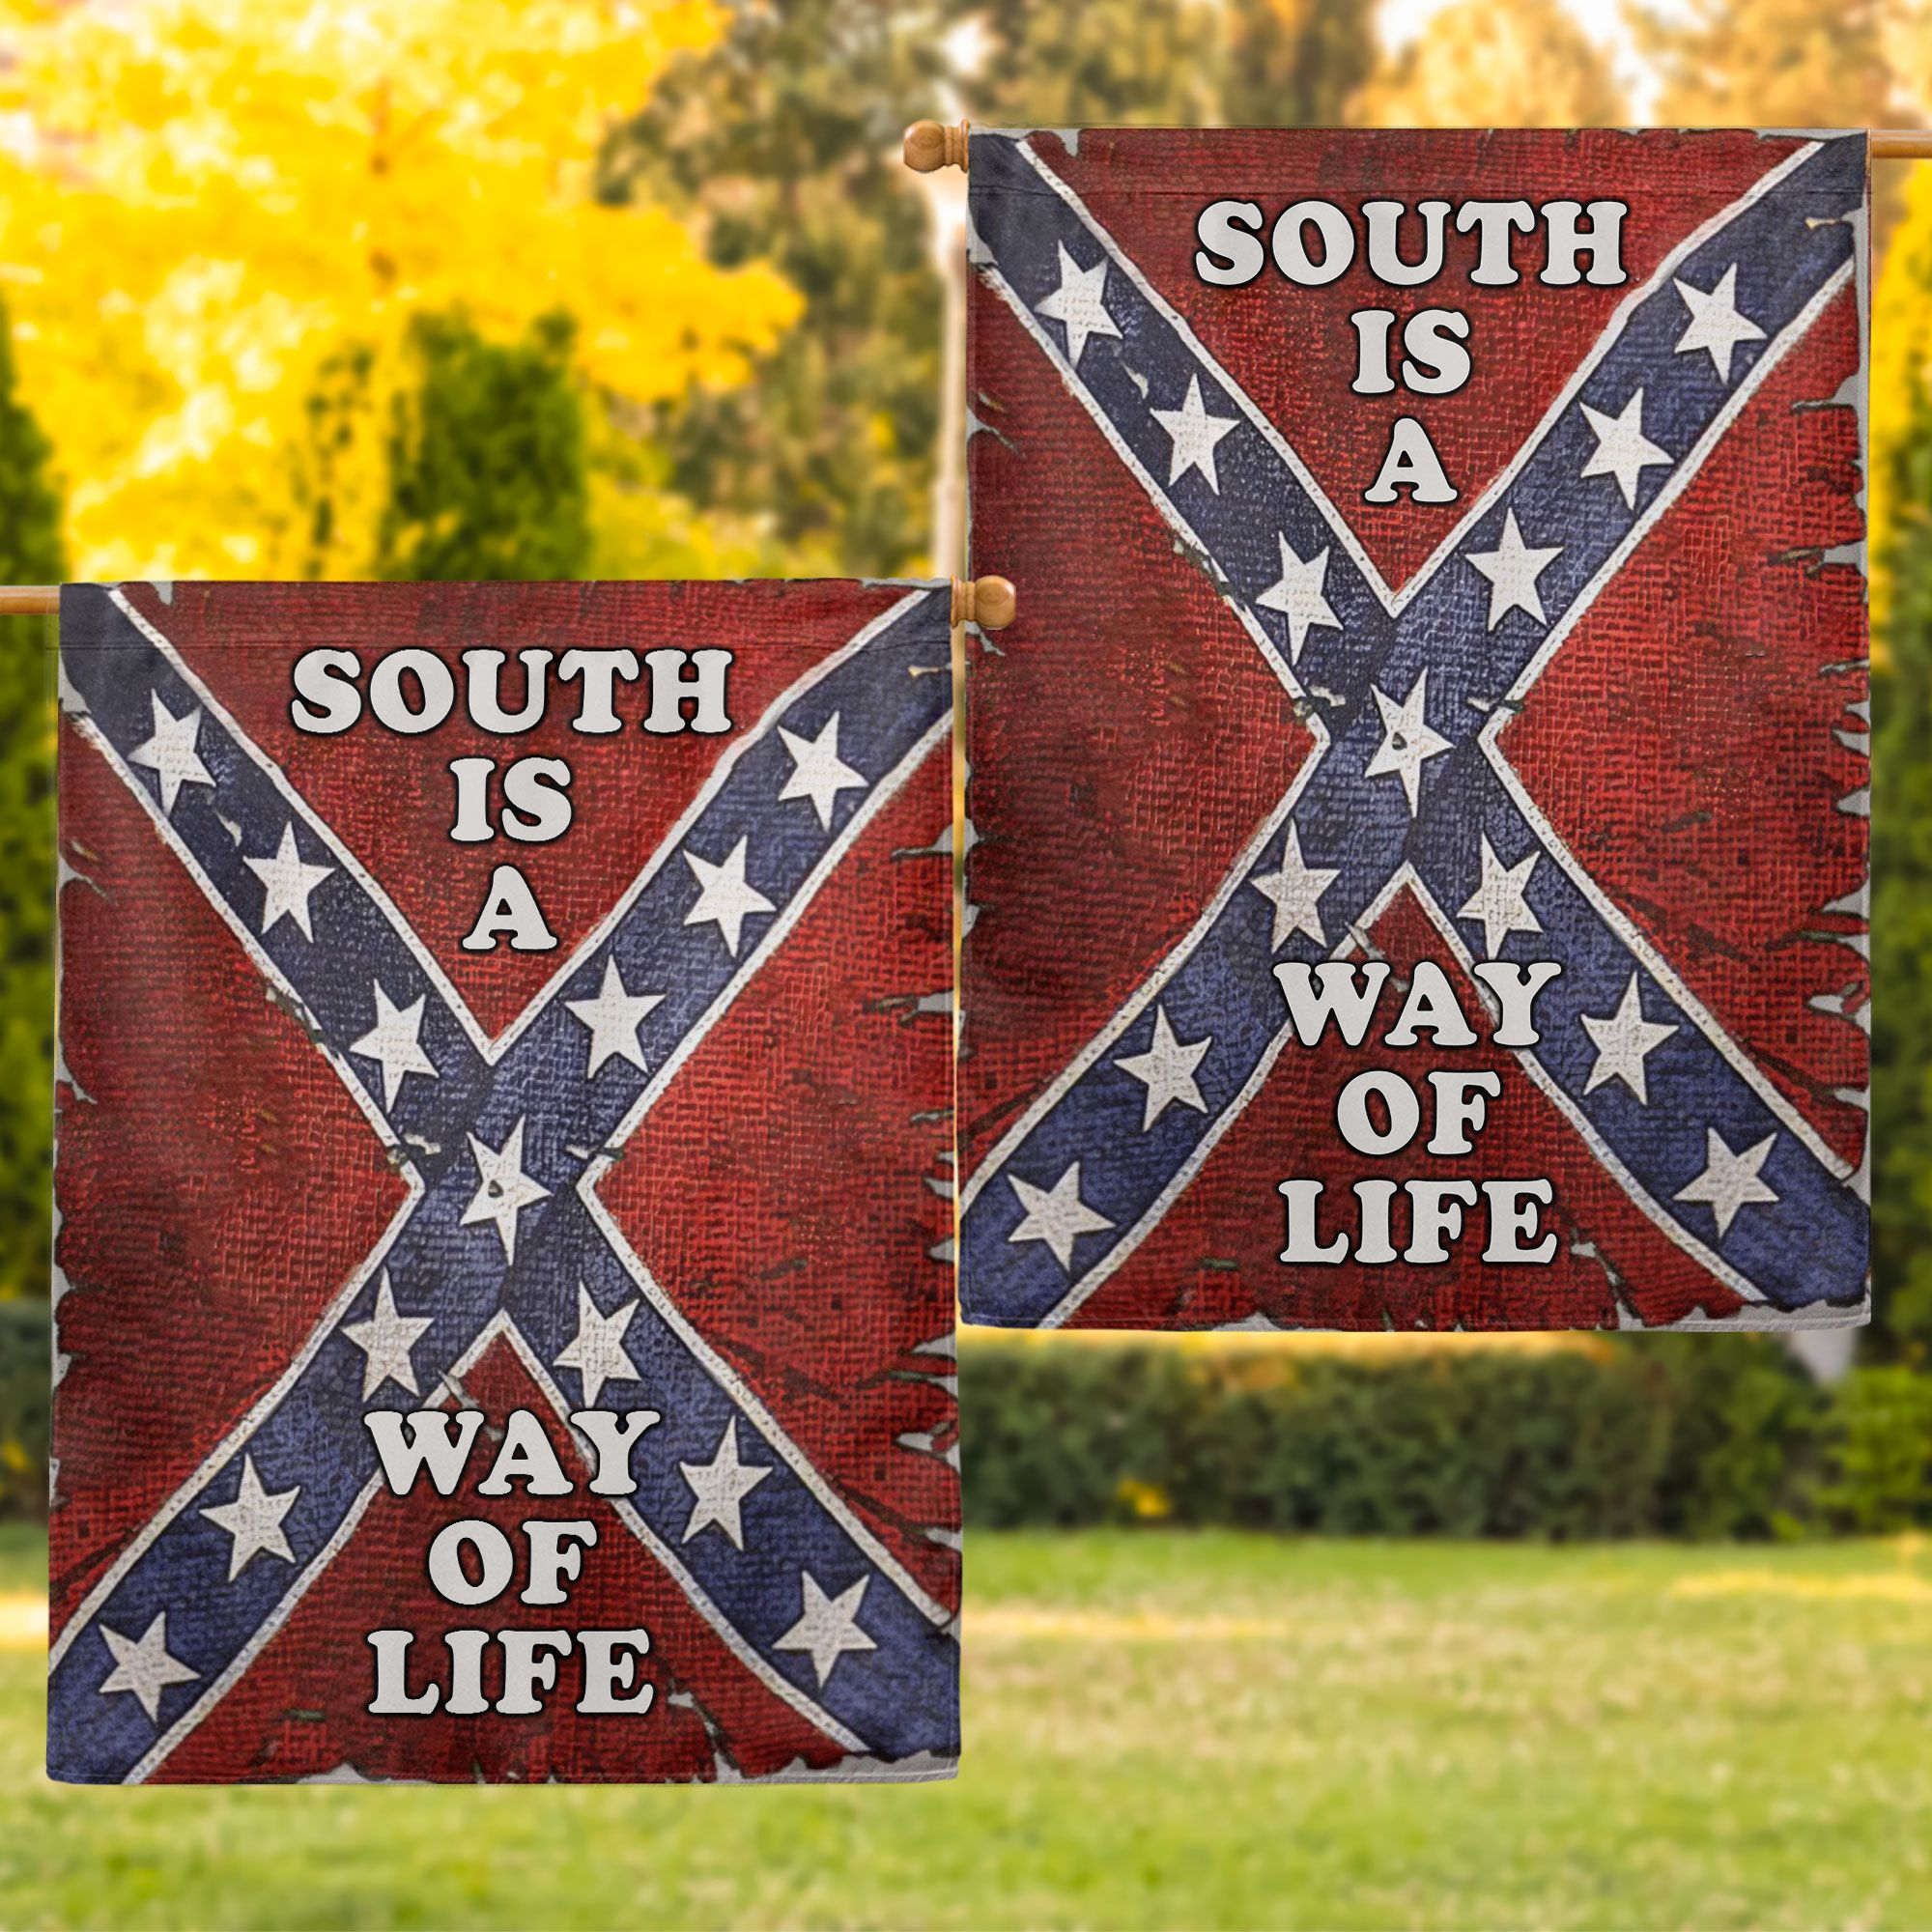 South is a way of life Southern Flag flag